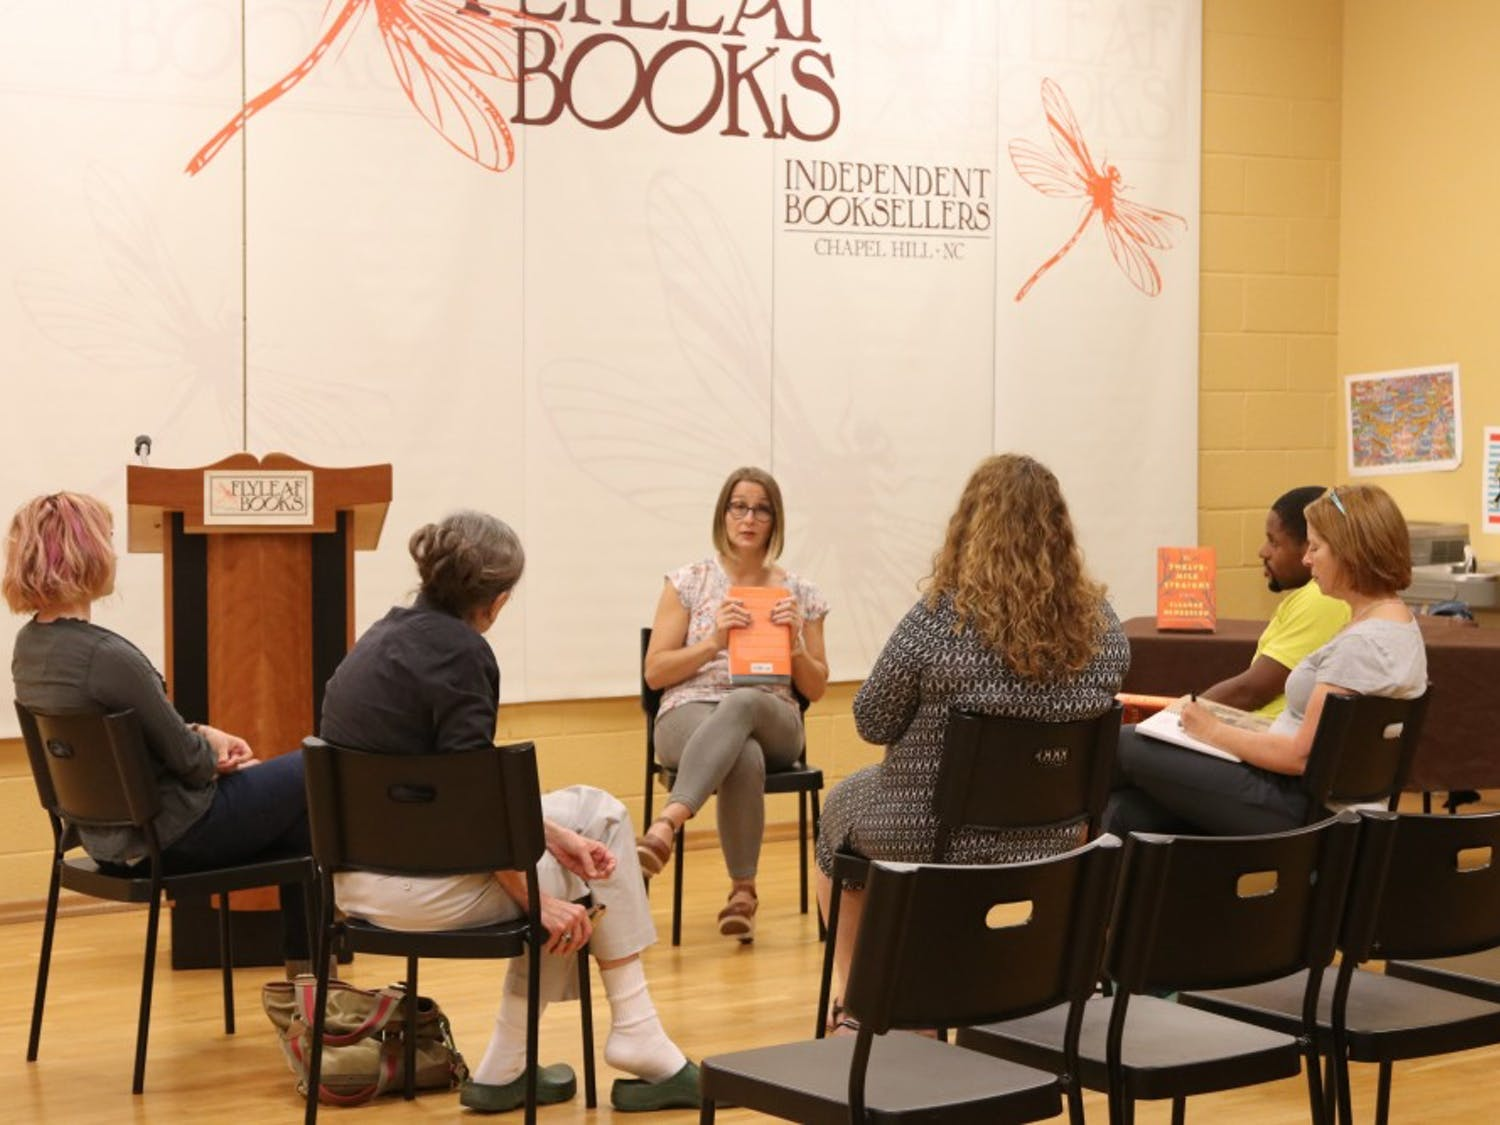 Eleanor Henderson sits with five others hosting a Q&A on Wednesday night at Flyleaf books.